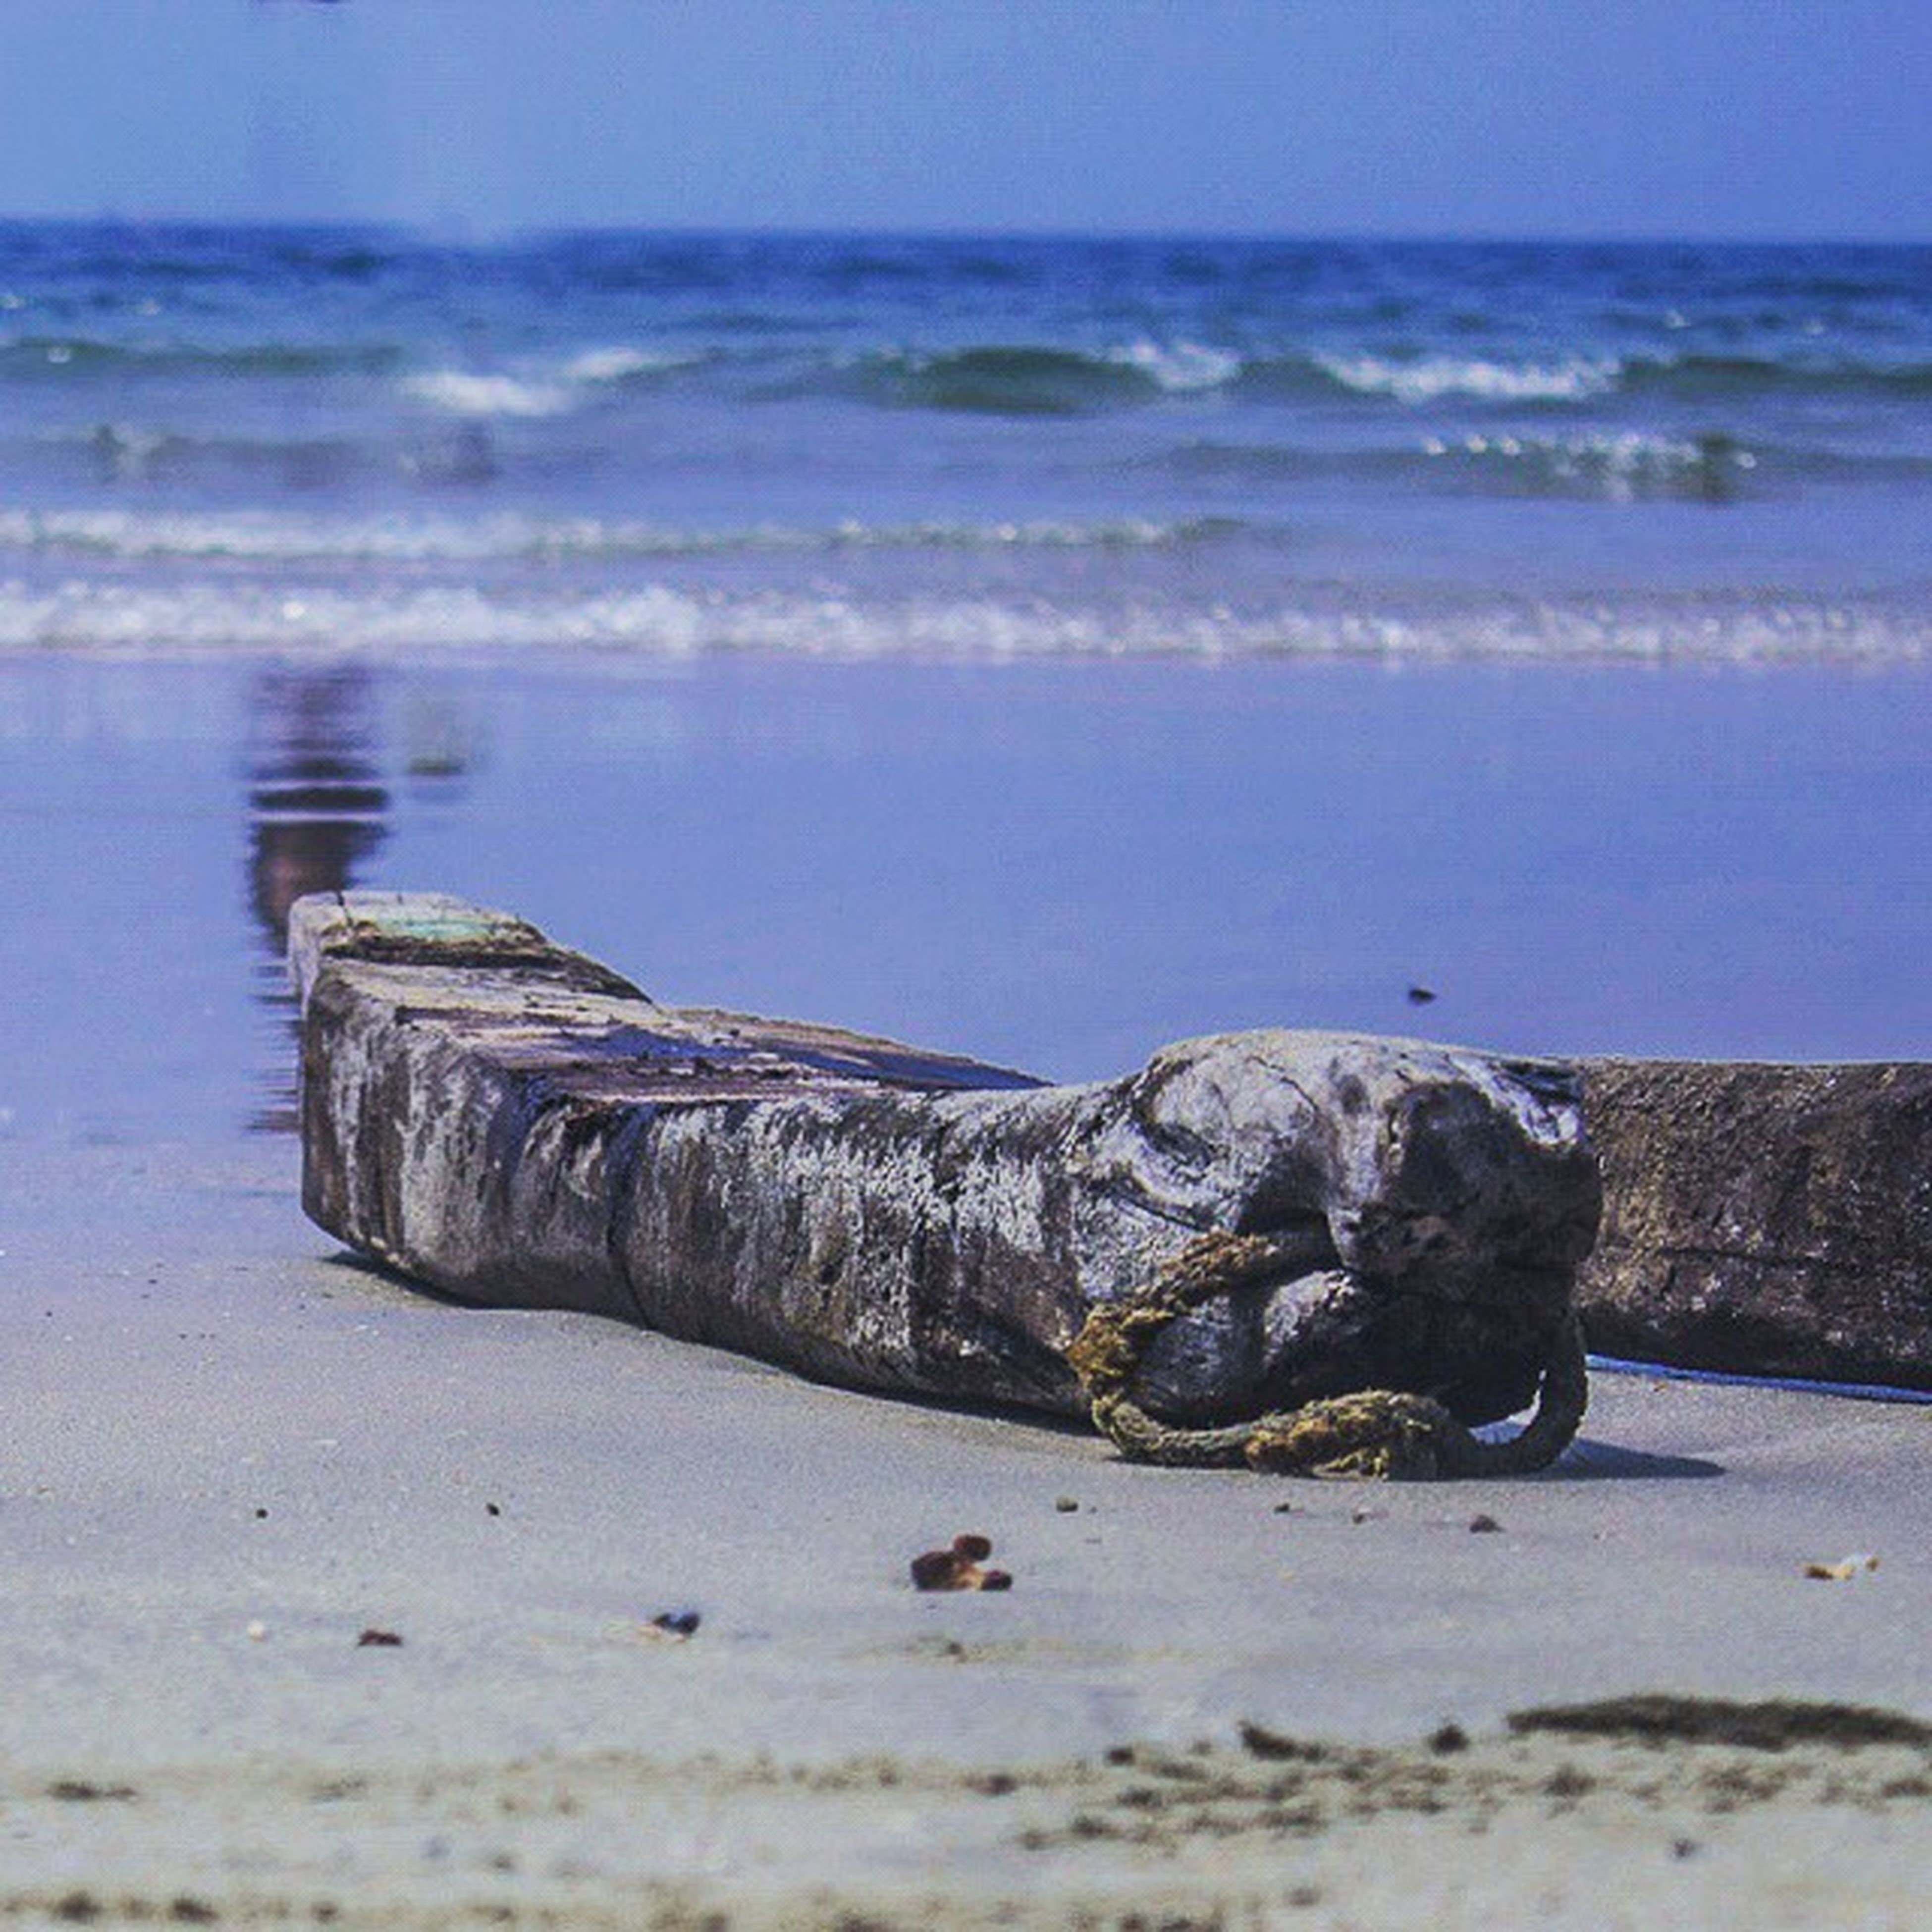 sea, water, beach, shore, sand, horizon over water, animal themes, tranquility, tranquil scene, nature, scenics, one animal, beauty in nature, animals in the wild, sky, wildlife, blue, day, idyllic, outdoors